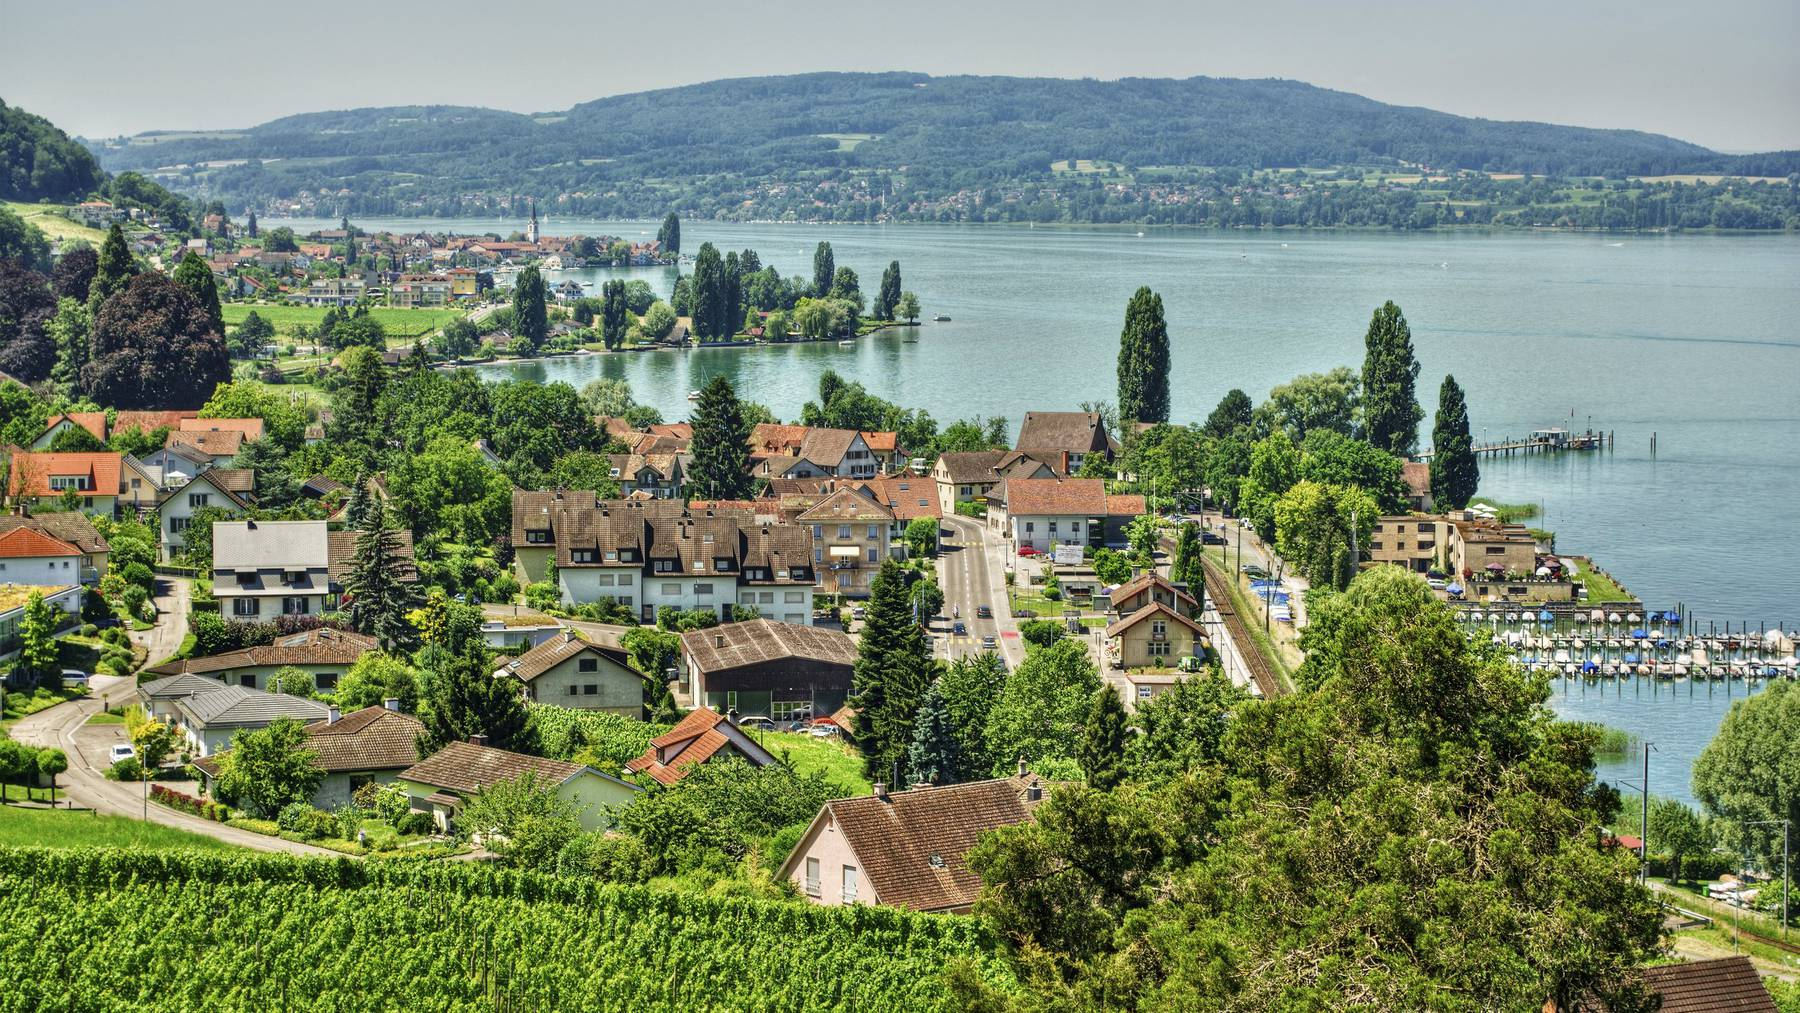 July 2015, the village Mannenbach and the Untersee (Lake Constance), HDR-technique